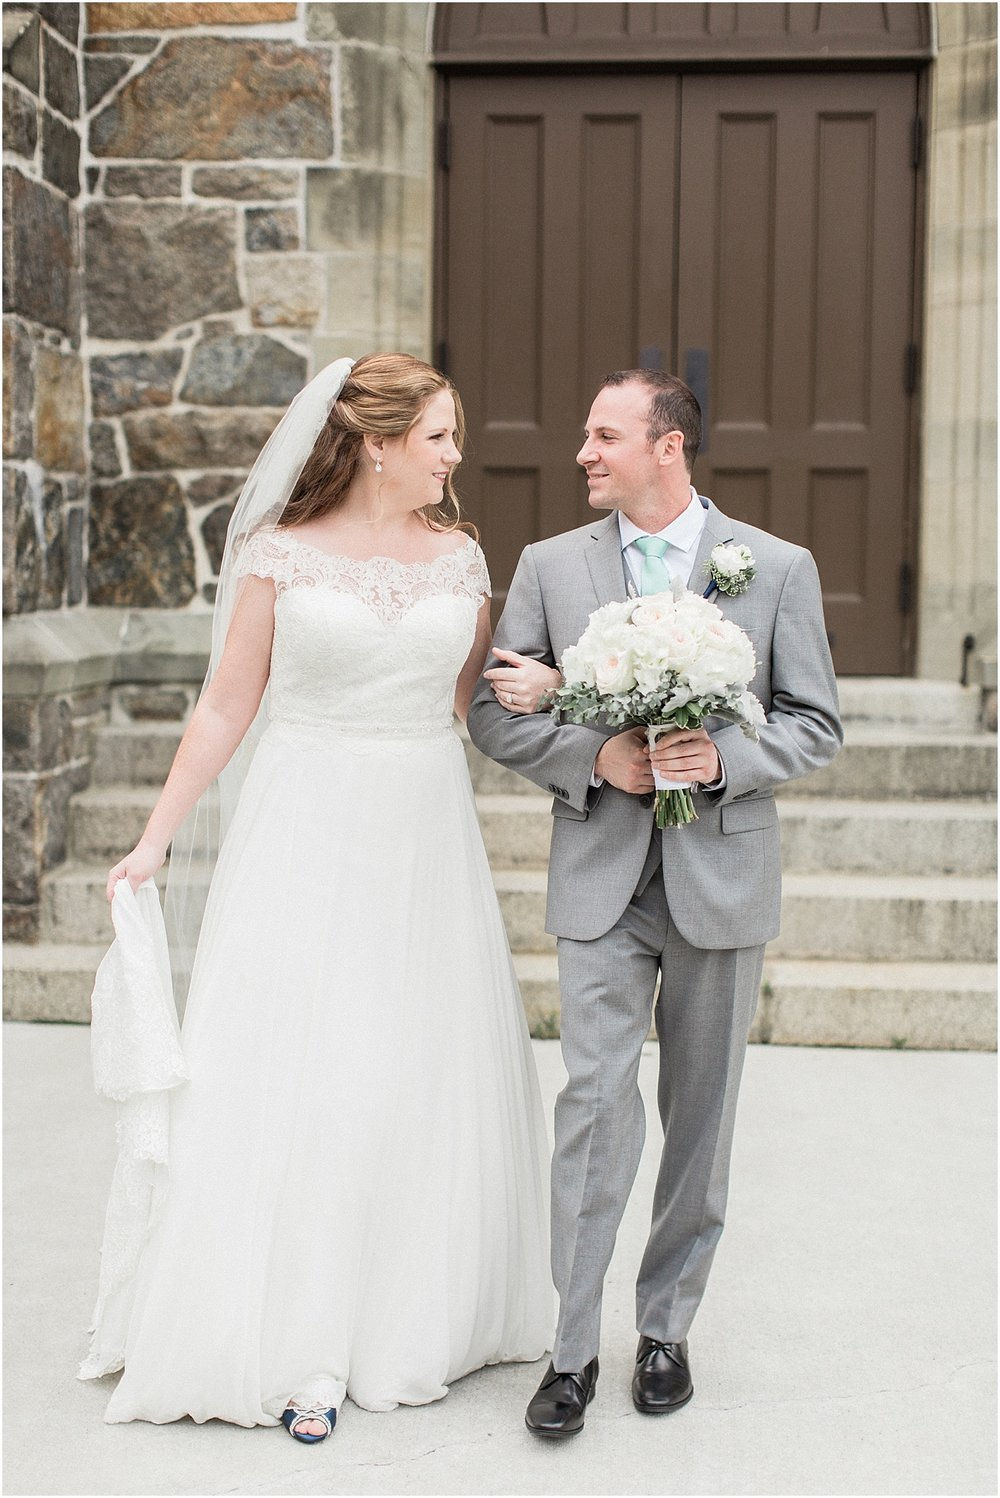 jaclyn_adam_st_ann_brendans_dorchester_southie_castle_bride_groom_venezia_waterfront__cape_cod_boston_wedding_photographer_meredith_jane_photography_photo_0900.jpg